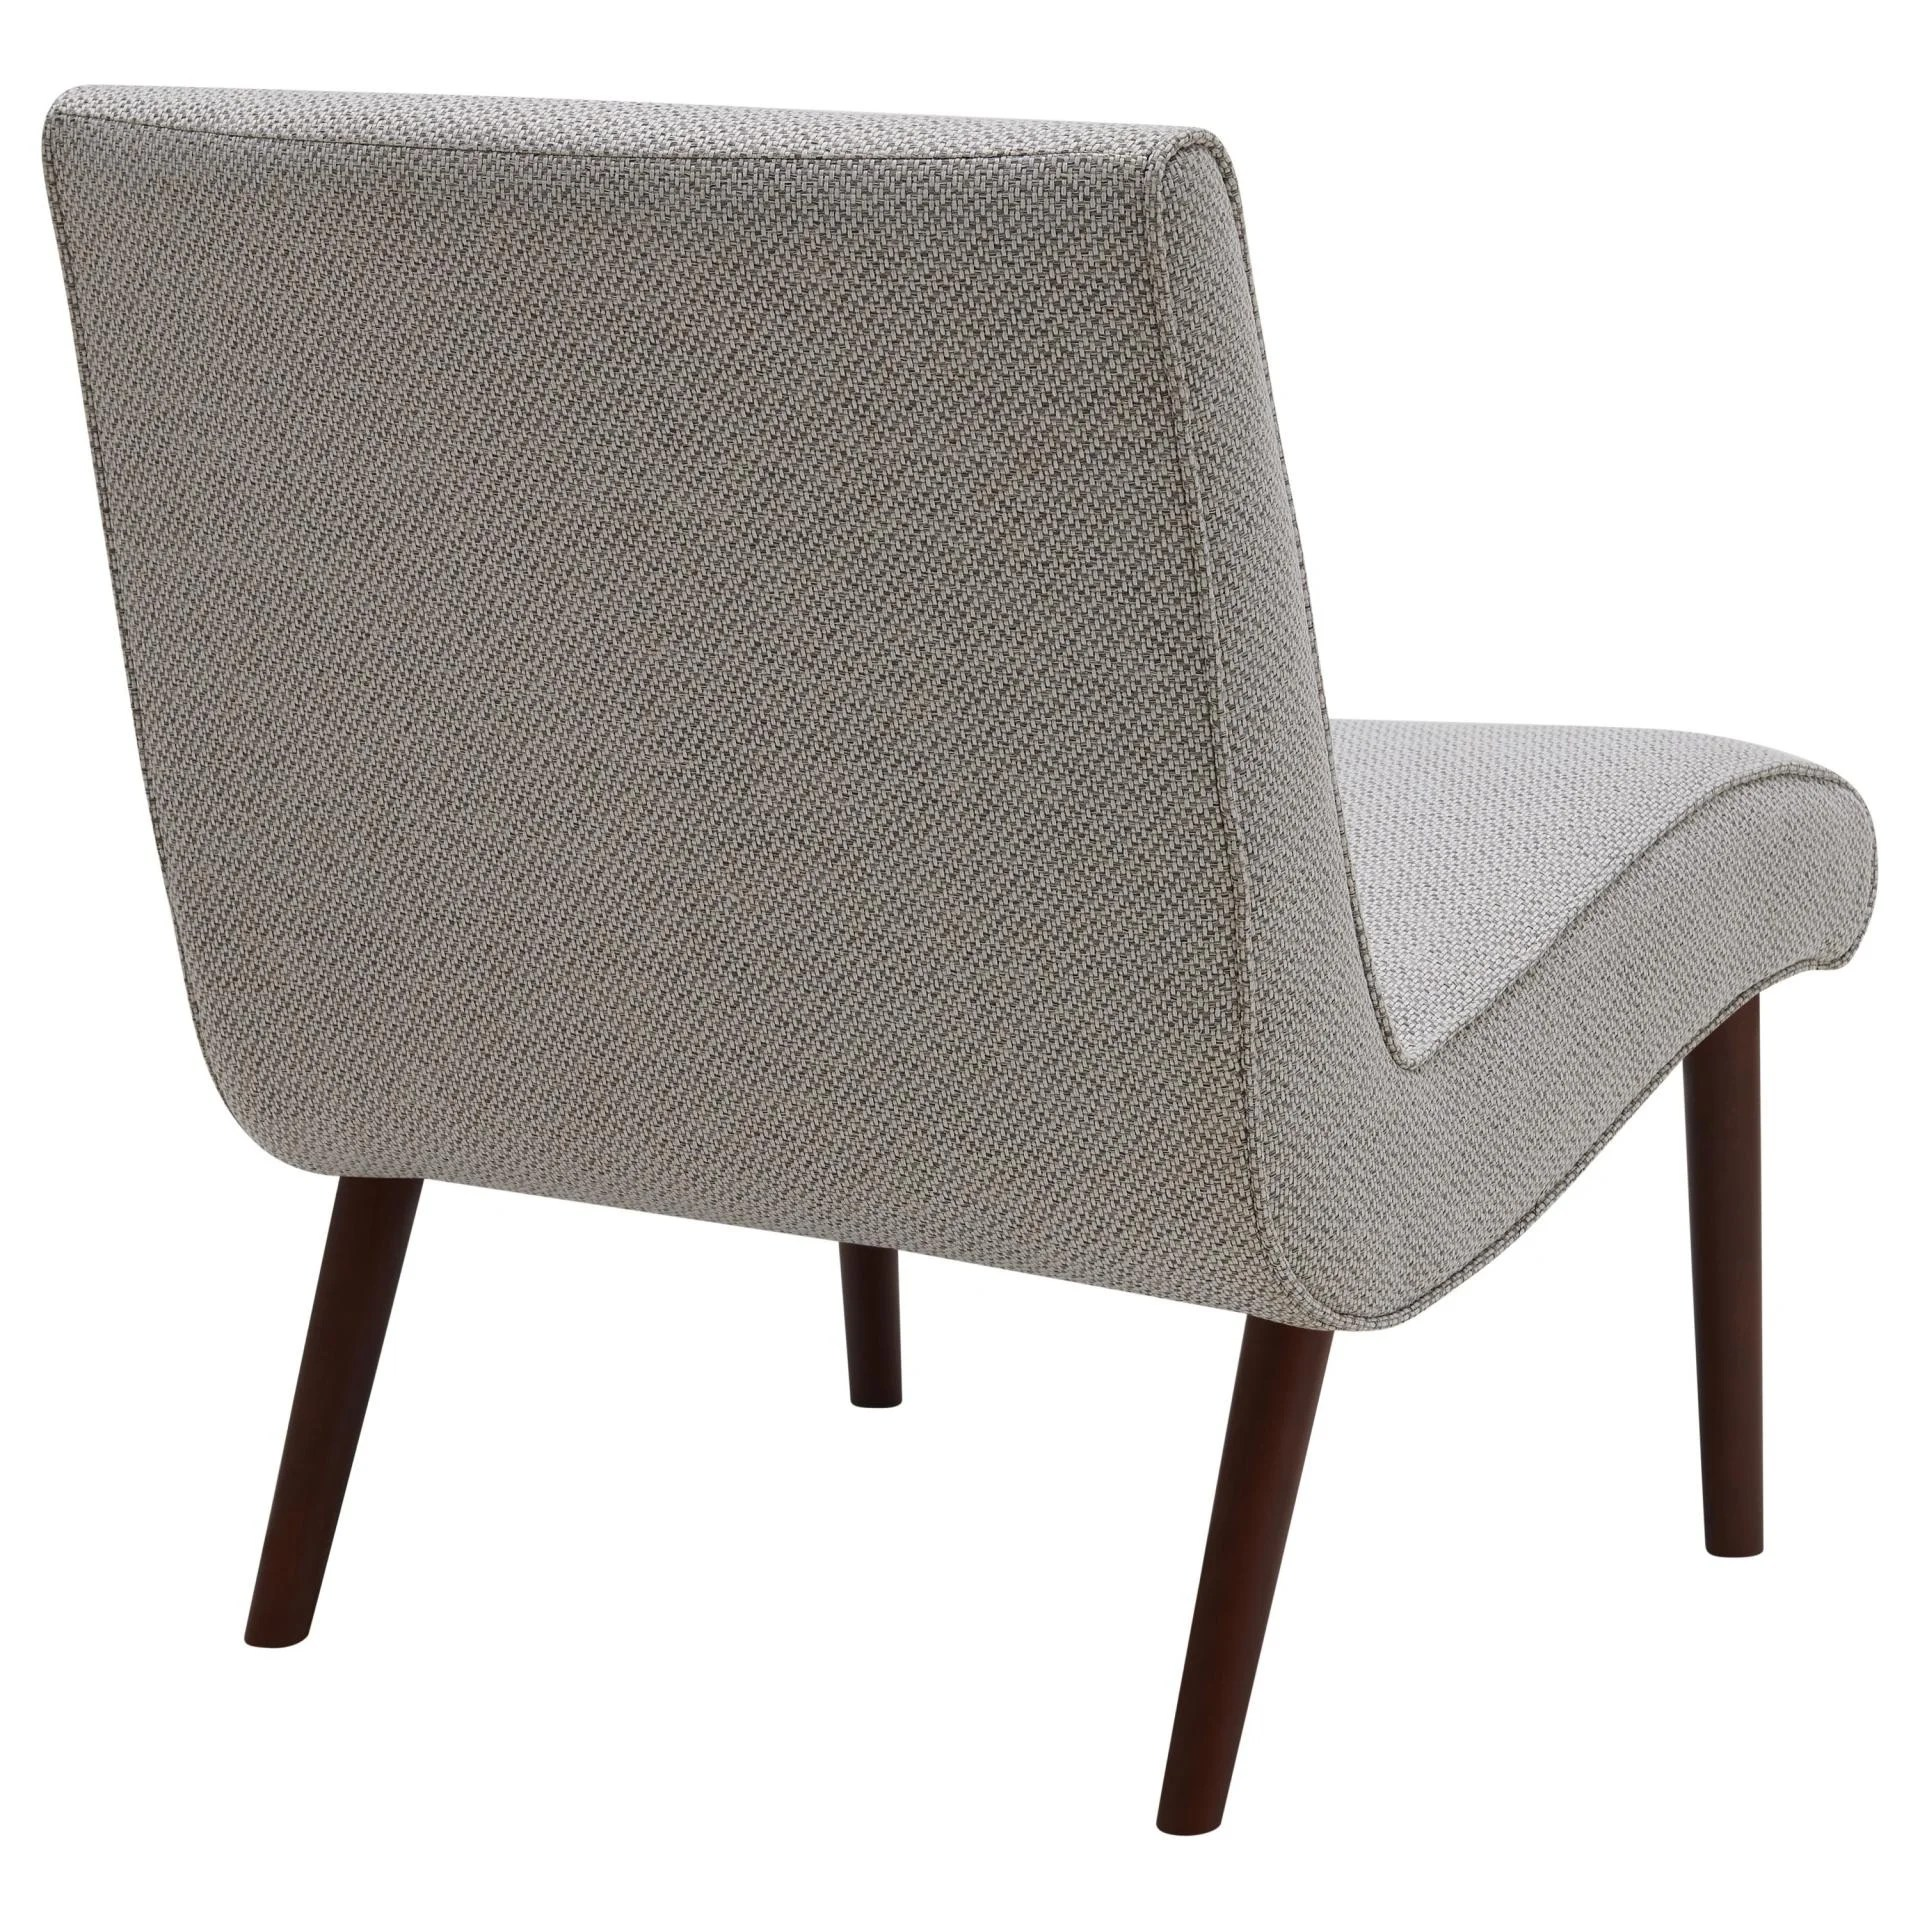 Alexis Fabric Chair Overstock 31571795